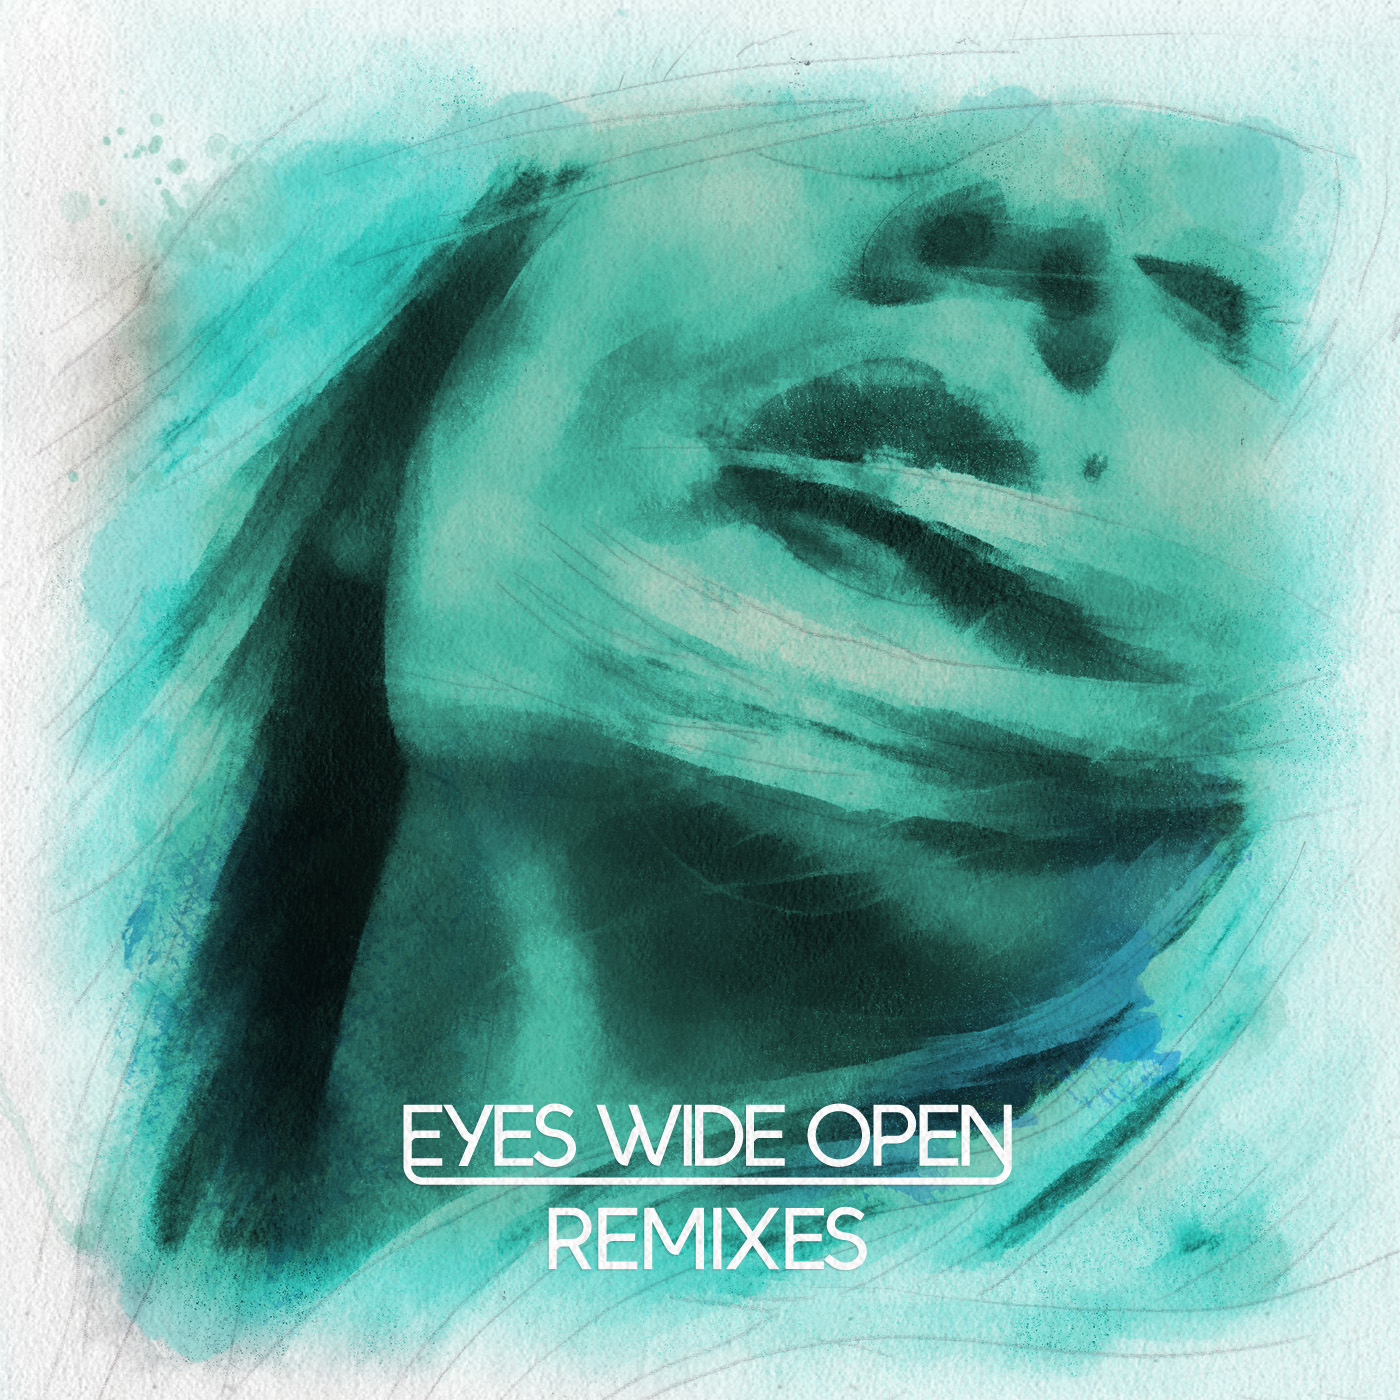 Eyes Wide Open Remixes Dirty South & Thomas Gold Feat. Kate Elsworth  Eyes Wide Open (Lenno & Felguk Remixes)